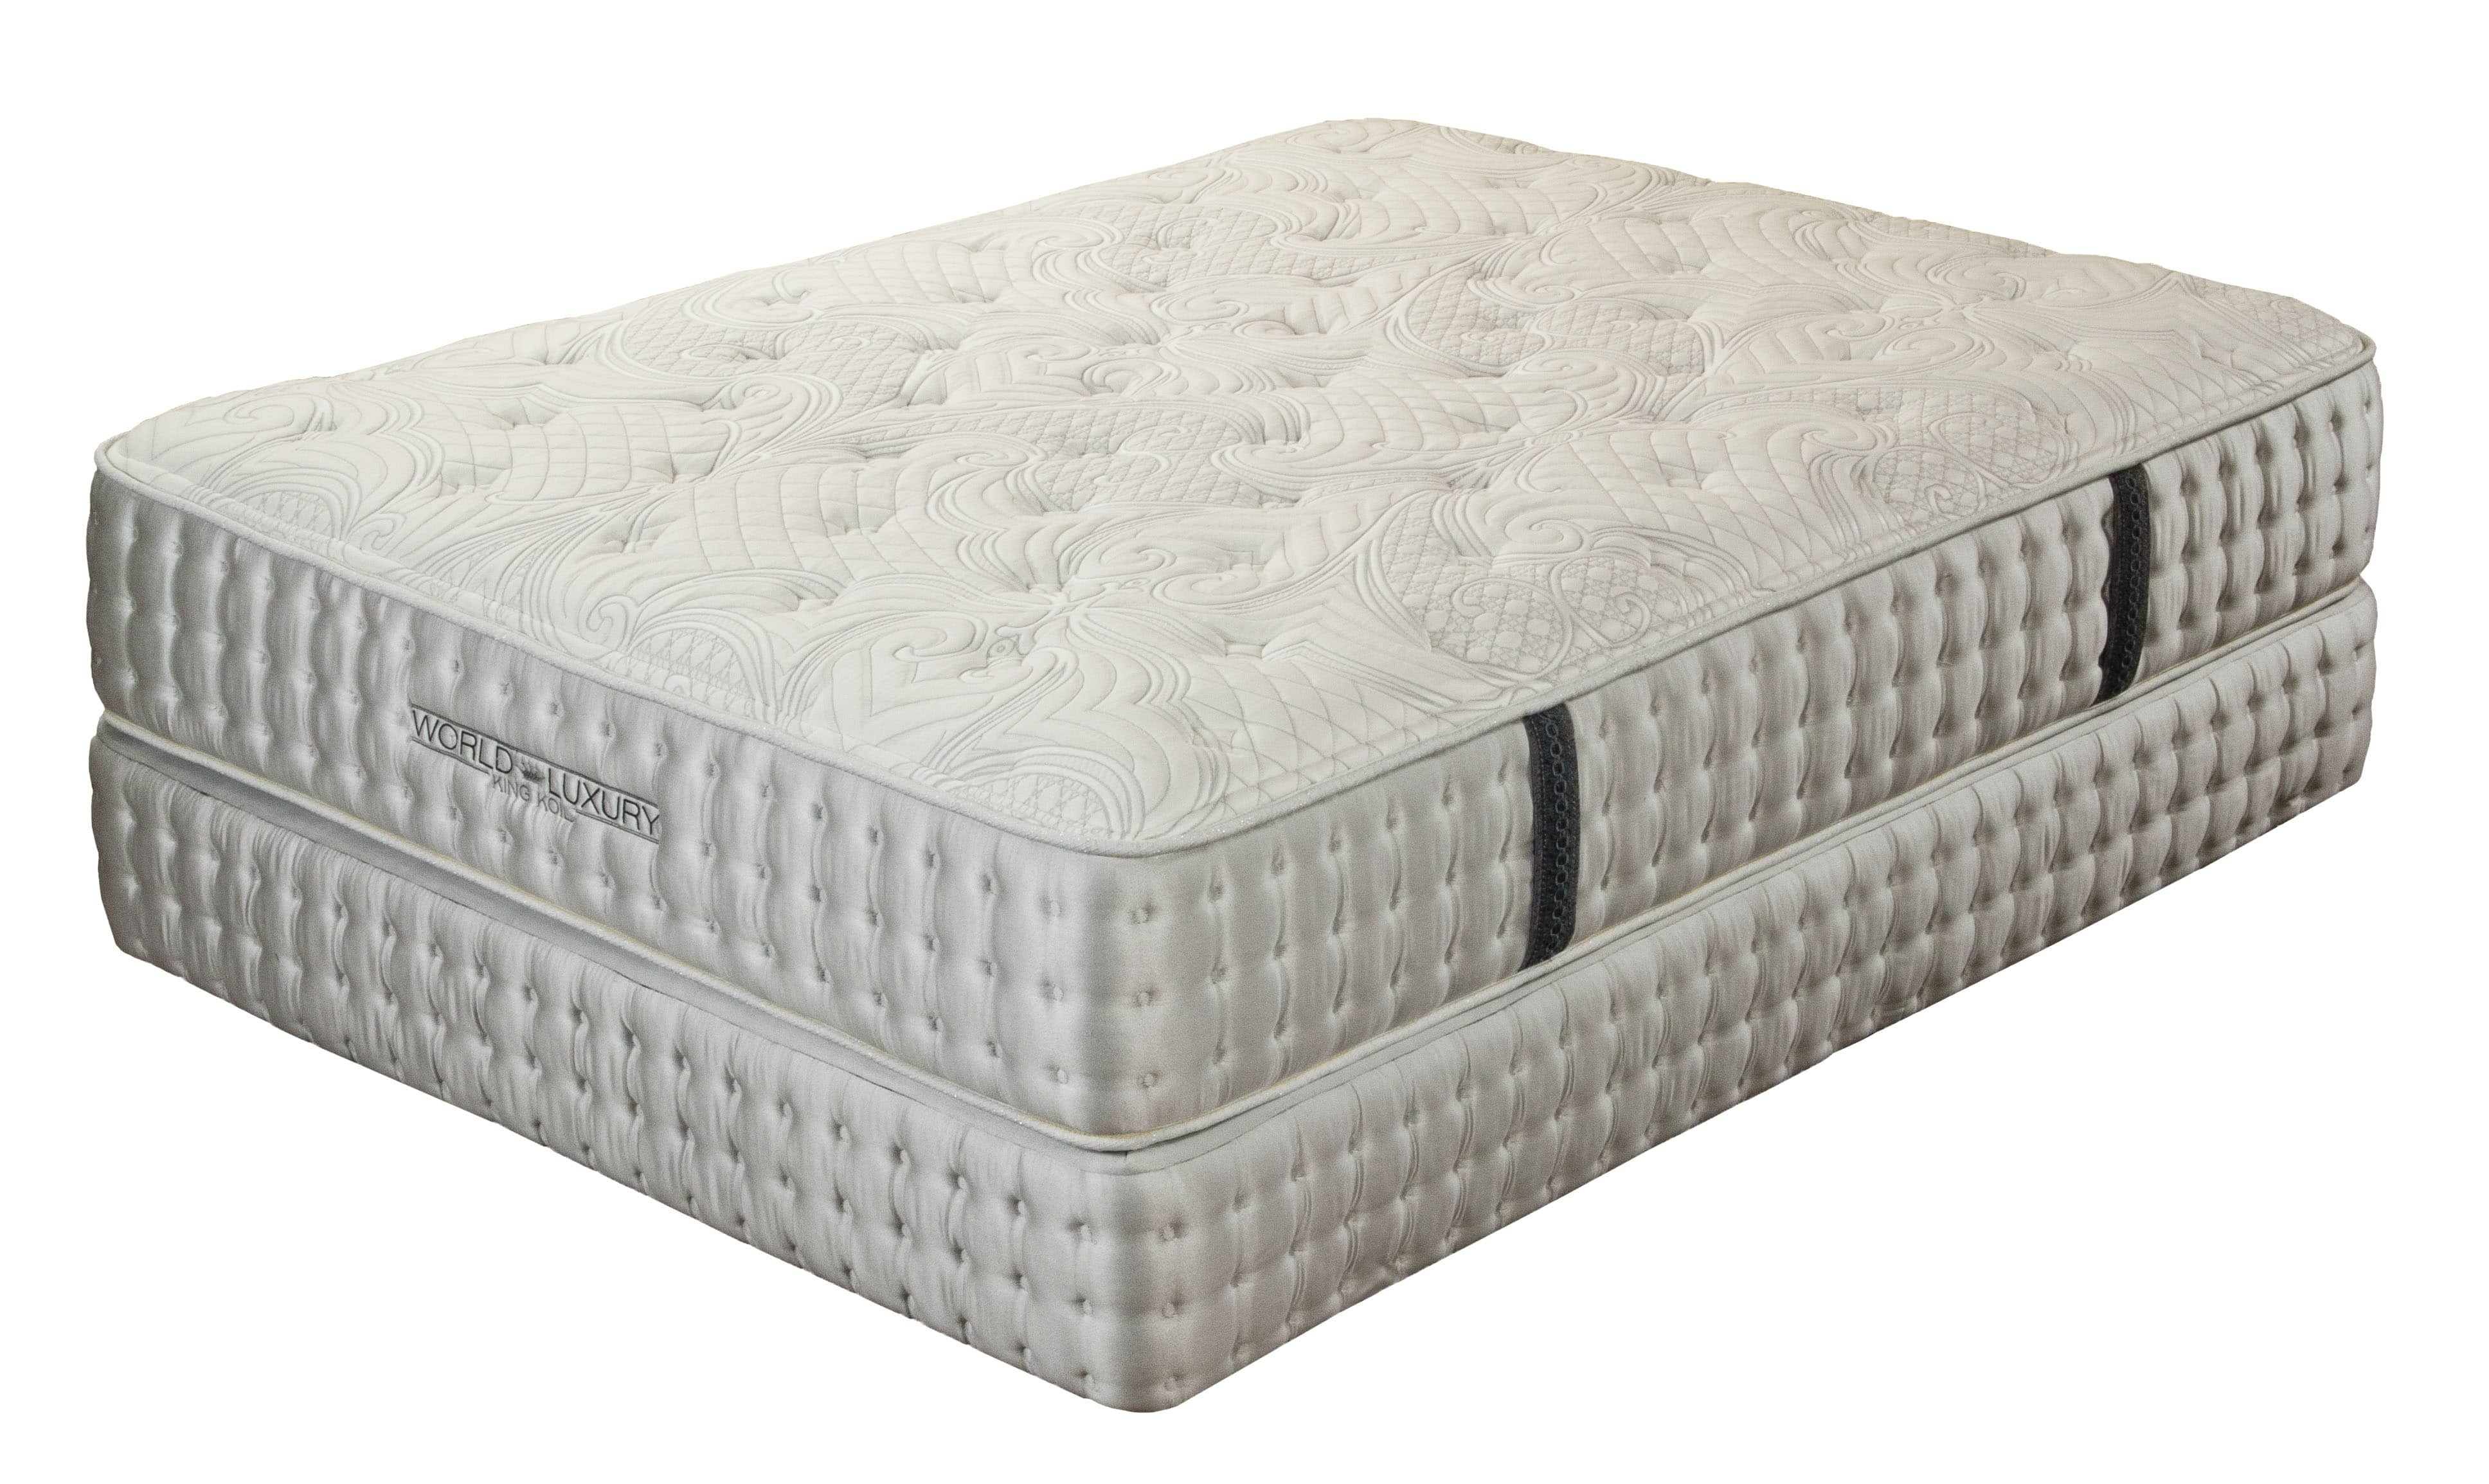 Monaco Plush Mattress Store Nothing But Beds